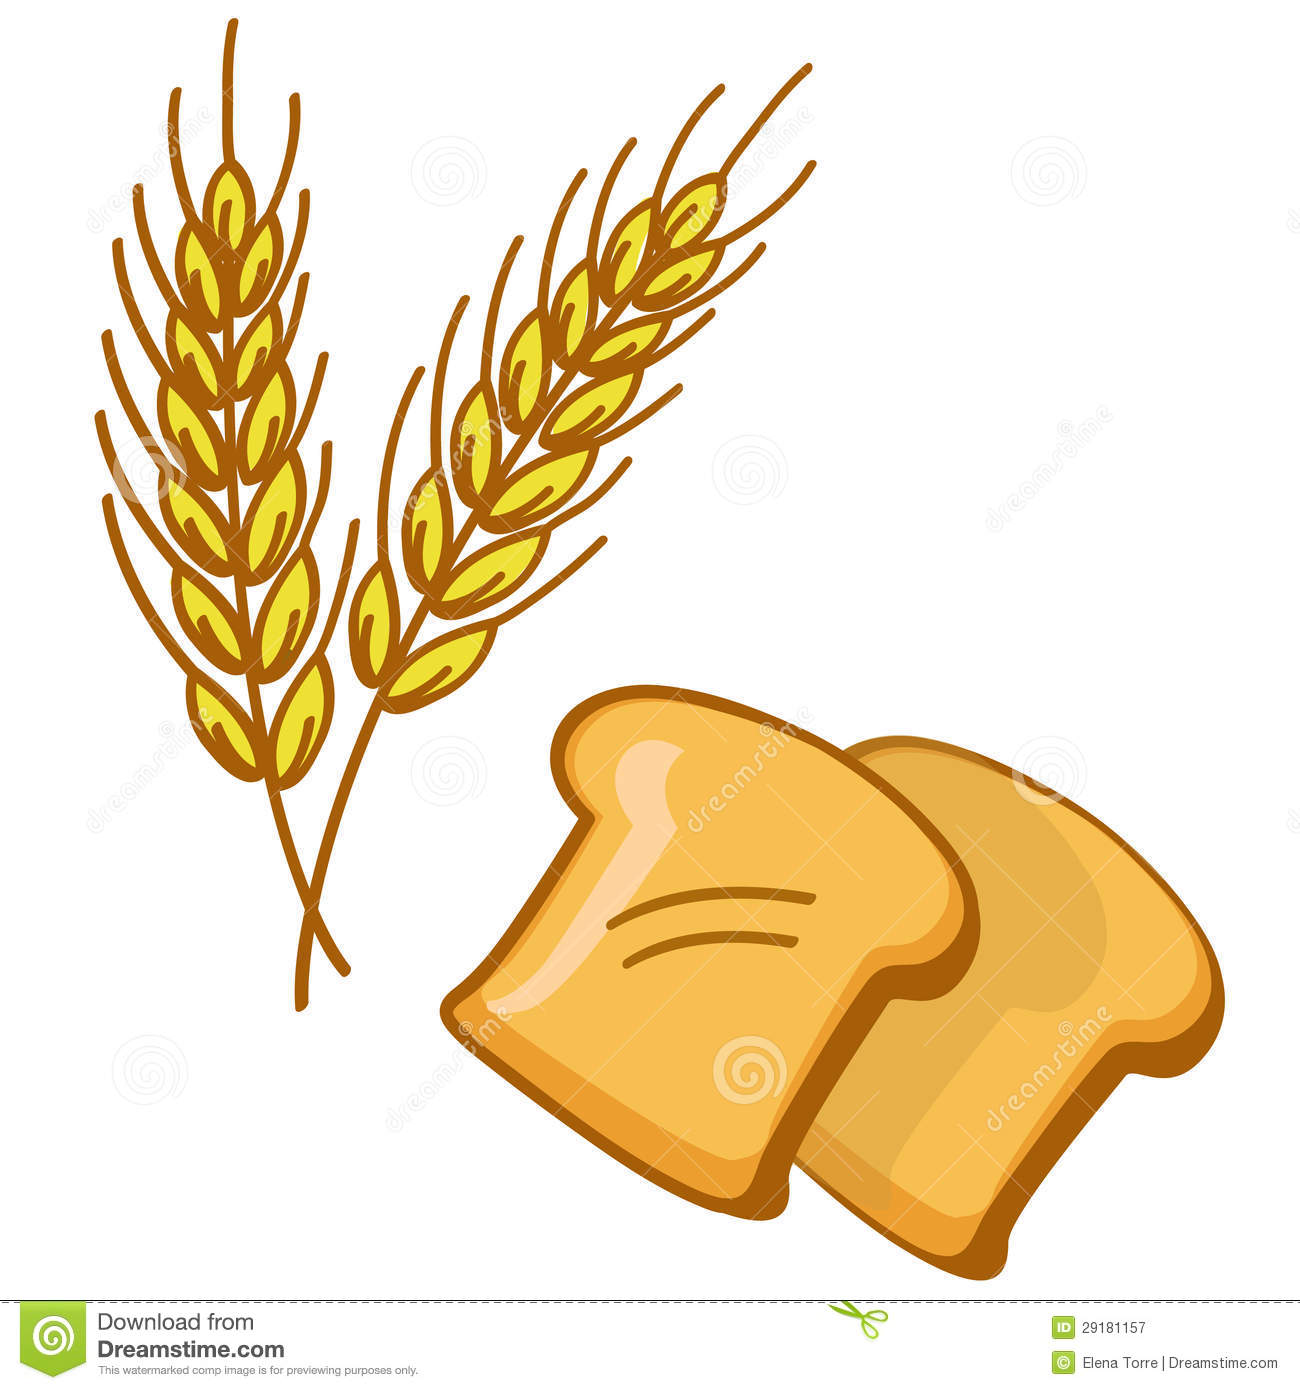 Wheat clipart wheat bread.  collection of whole